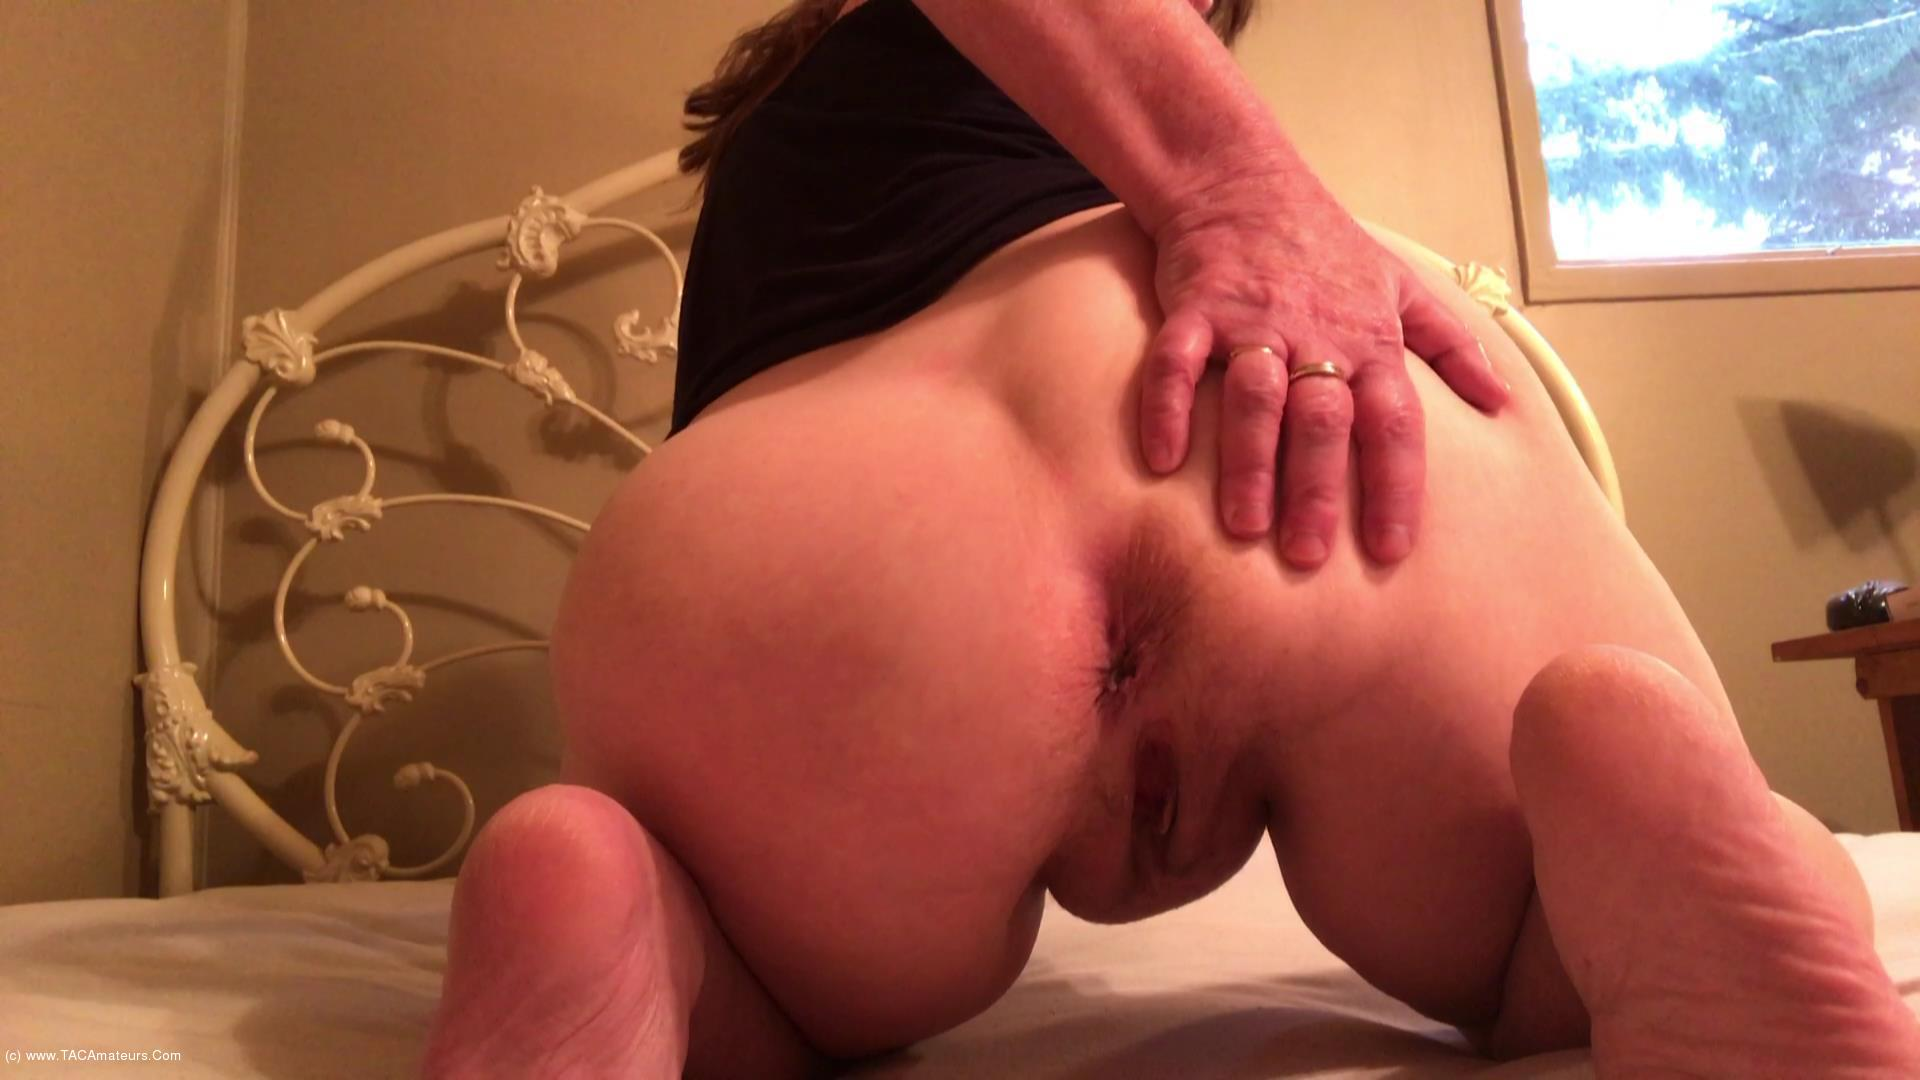 CougarBabeJolee - My Arse Needs Worshipping scene 3